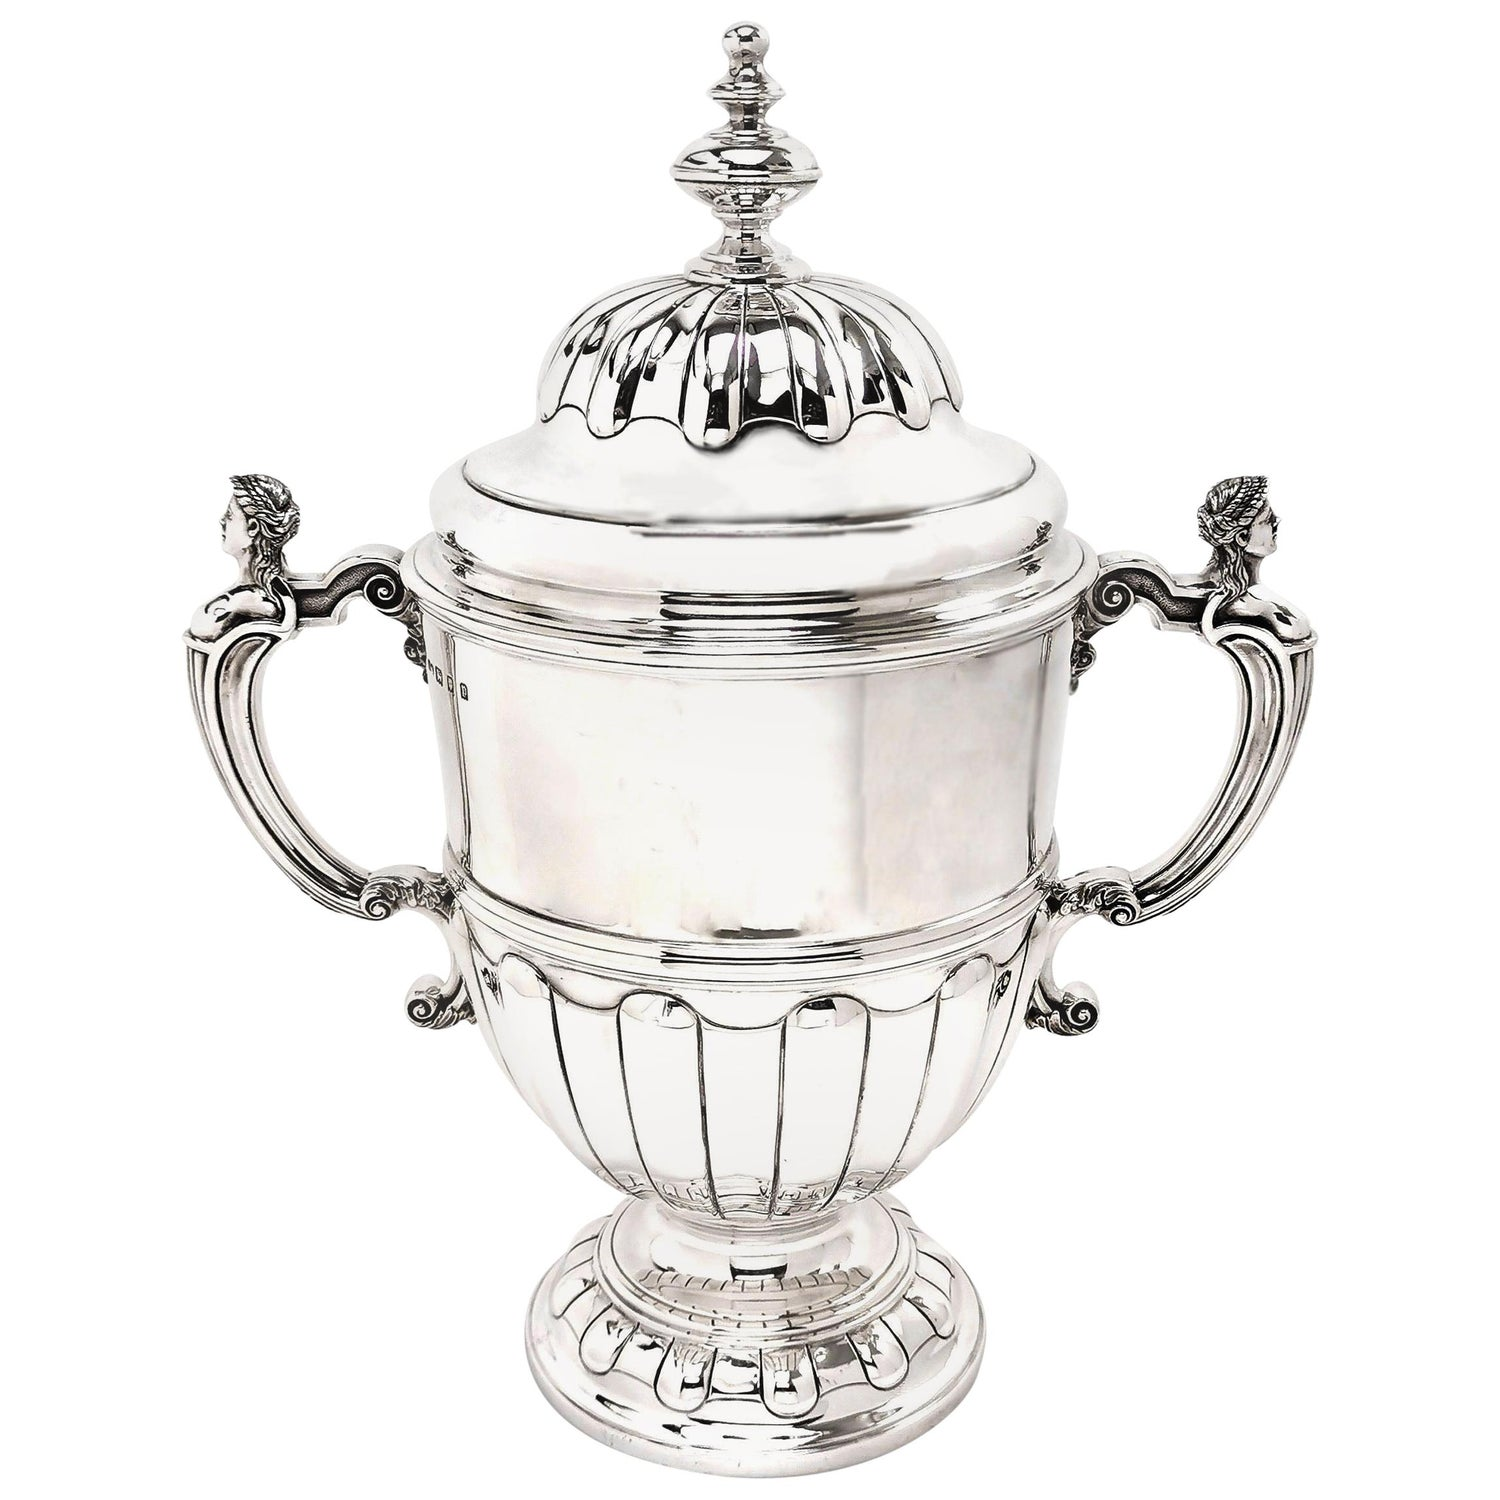 Large Sterling Silver Trophy Lidded Cup and Cover, 1930